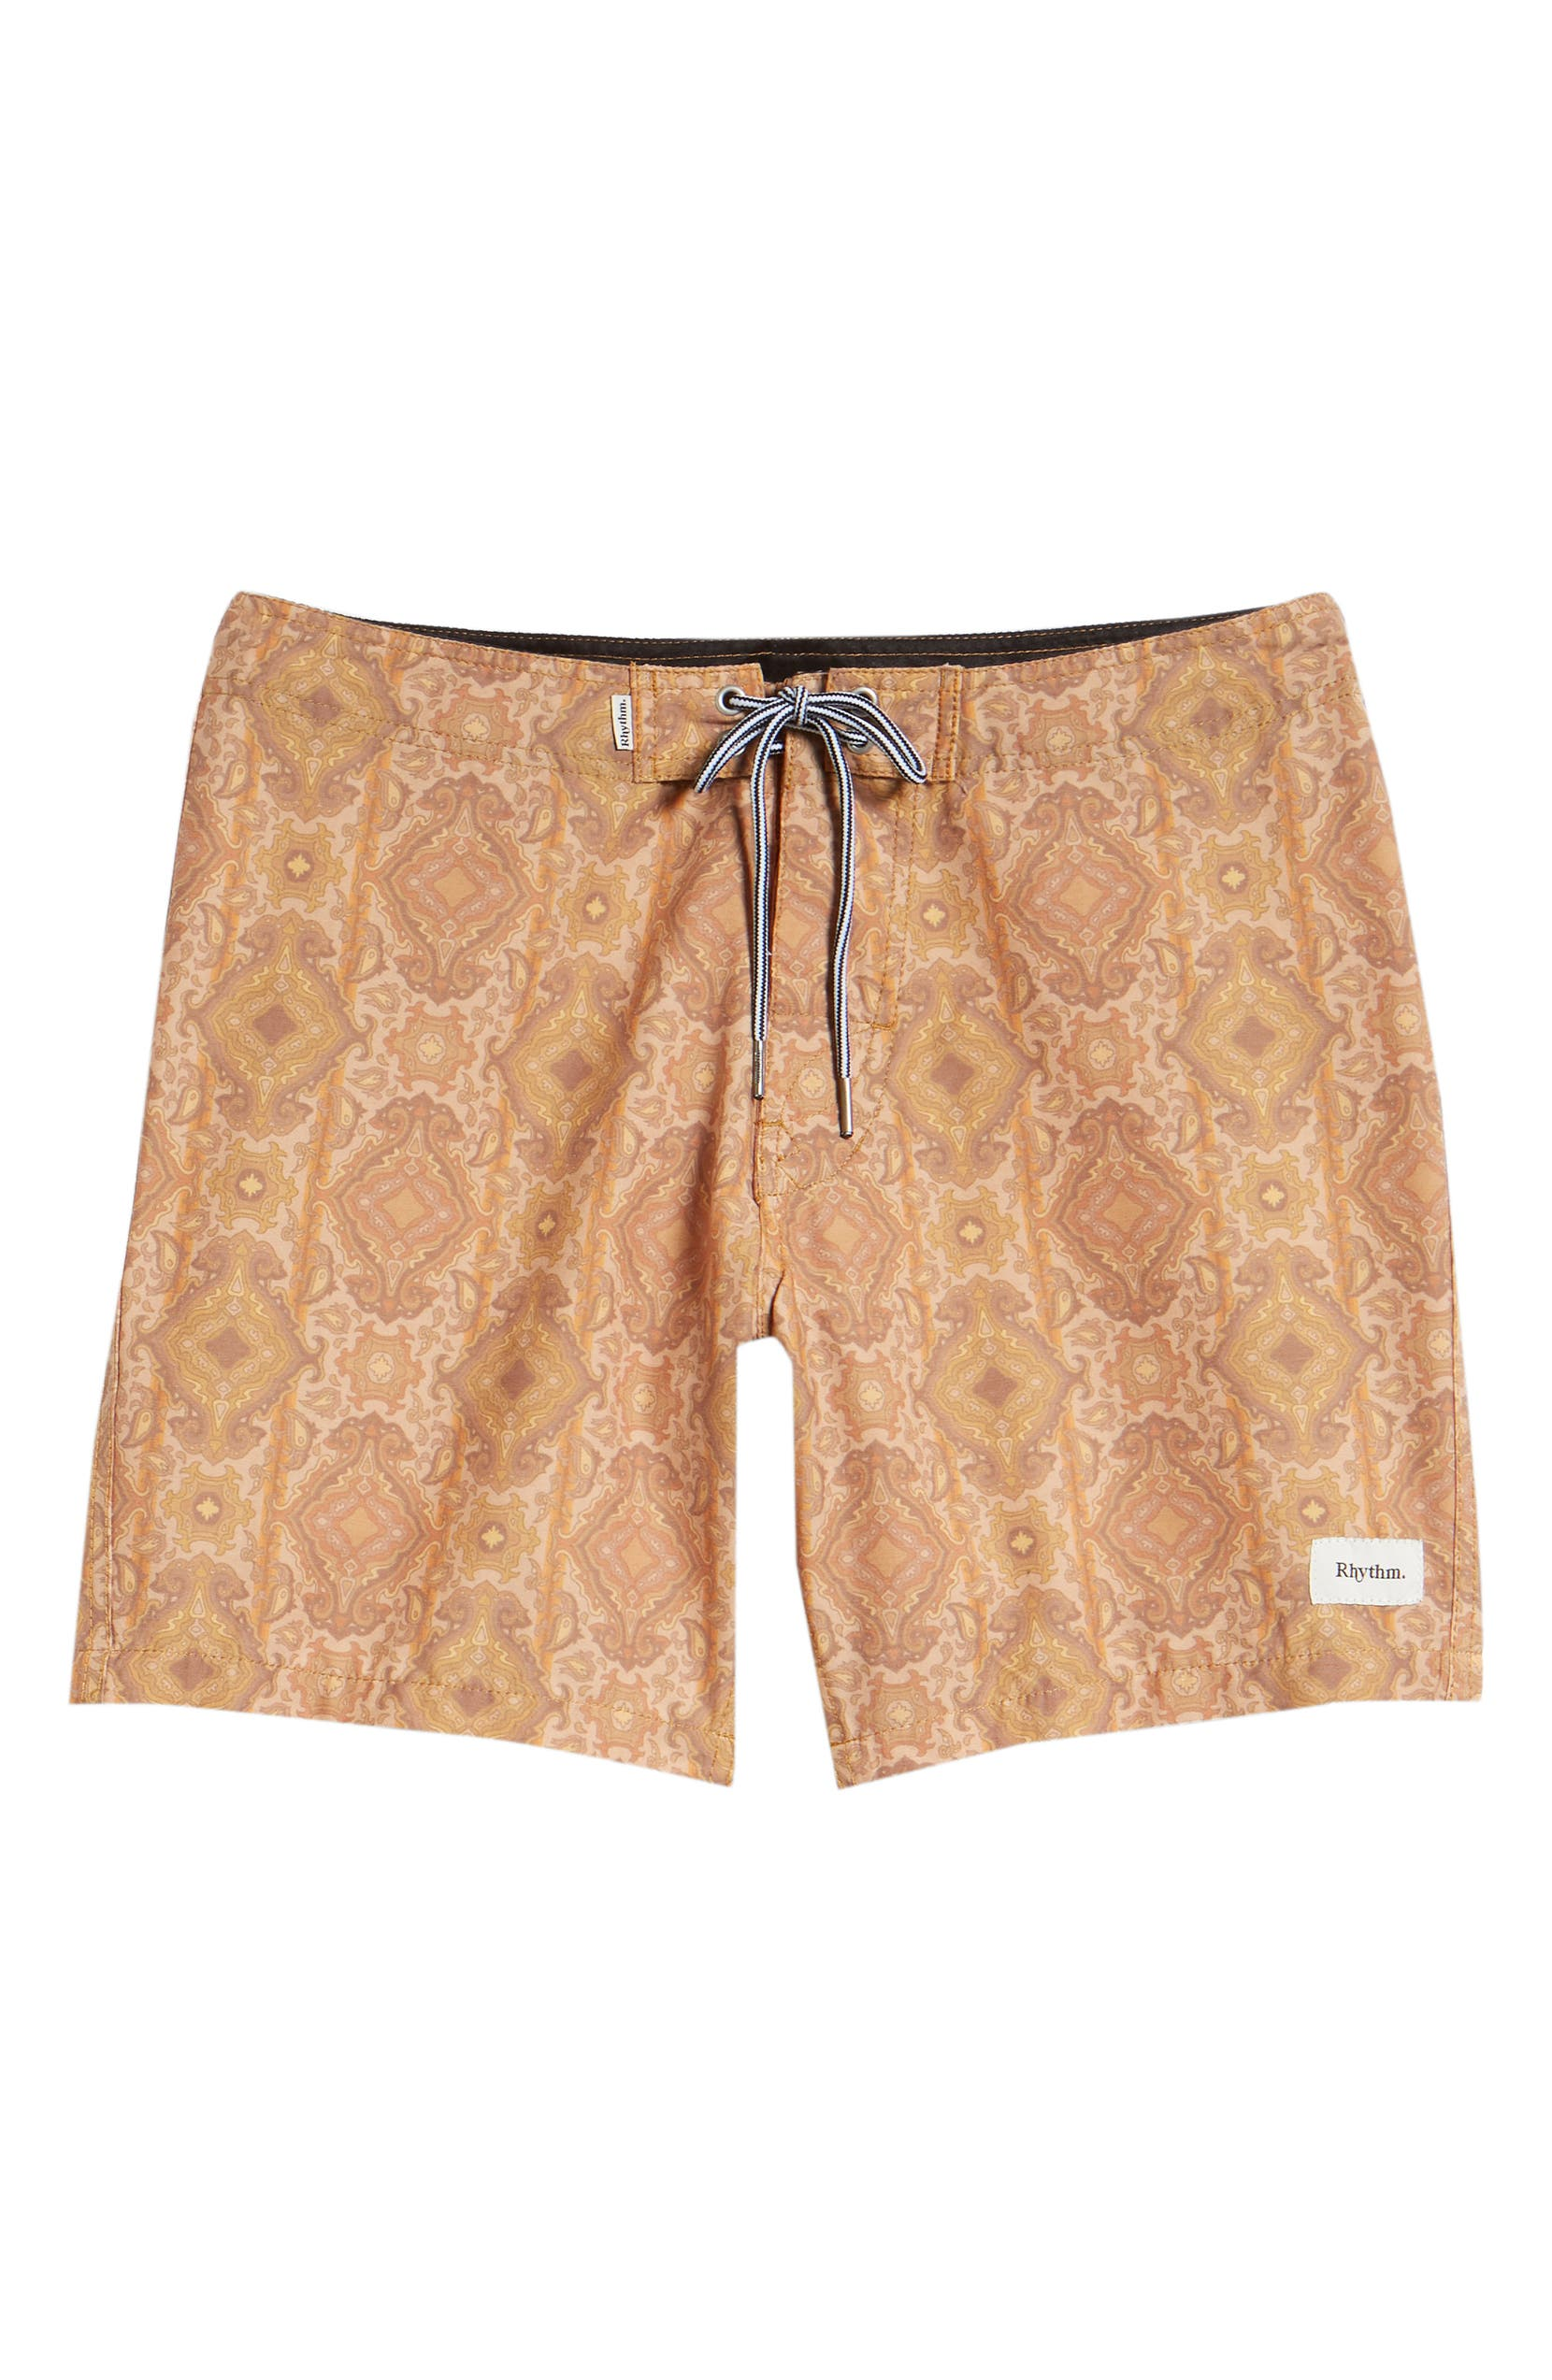 73f0c49ac3 Rhythm Sorrento Swim Trunks | Nordstrom